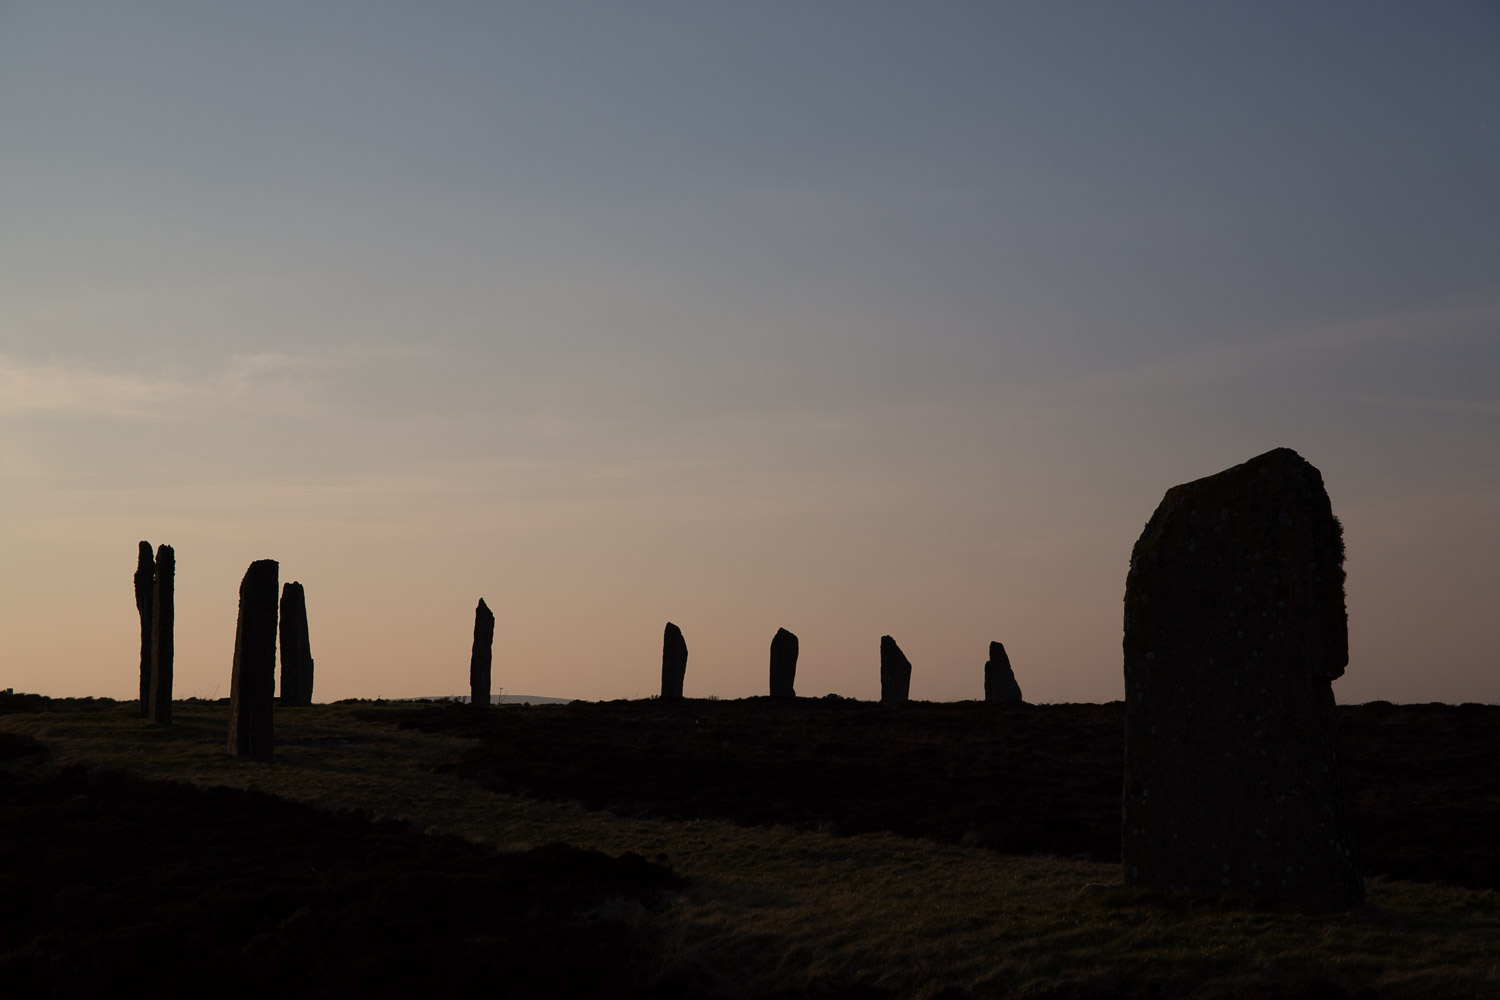 The ring of Brodgar is an ancient Neolithic Stone Circle in Orkney, Scotland